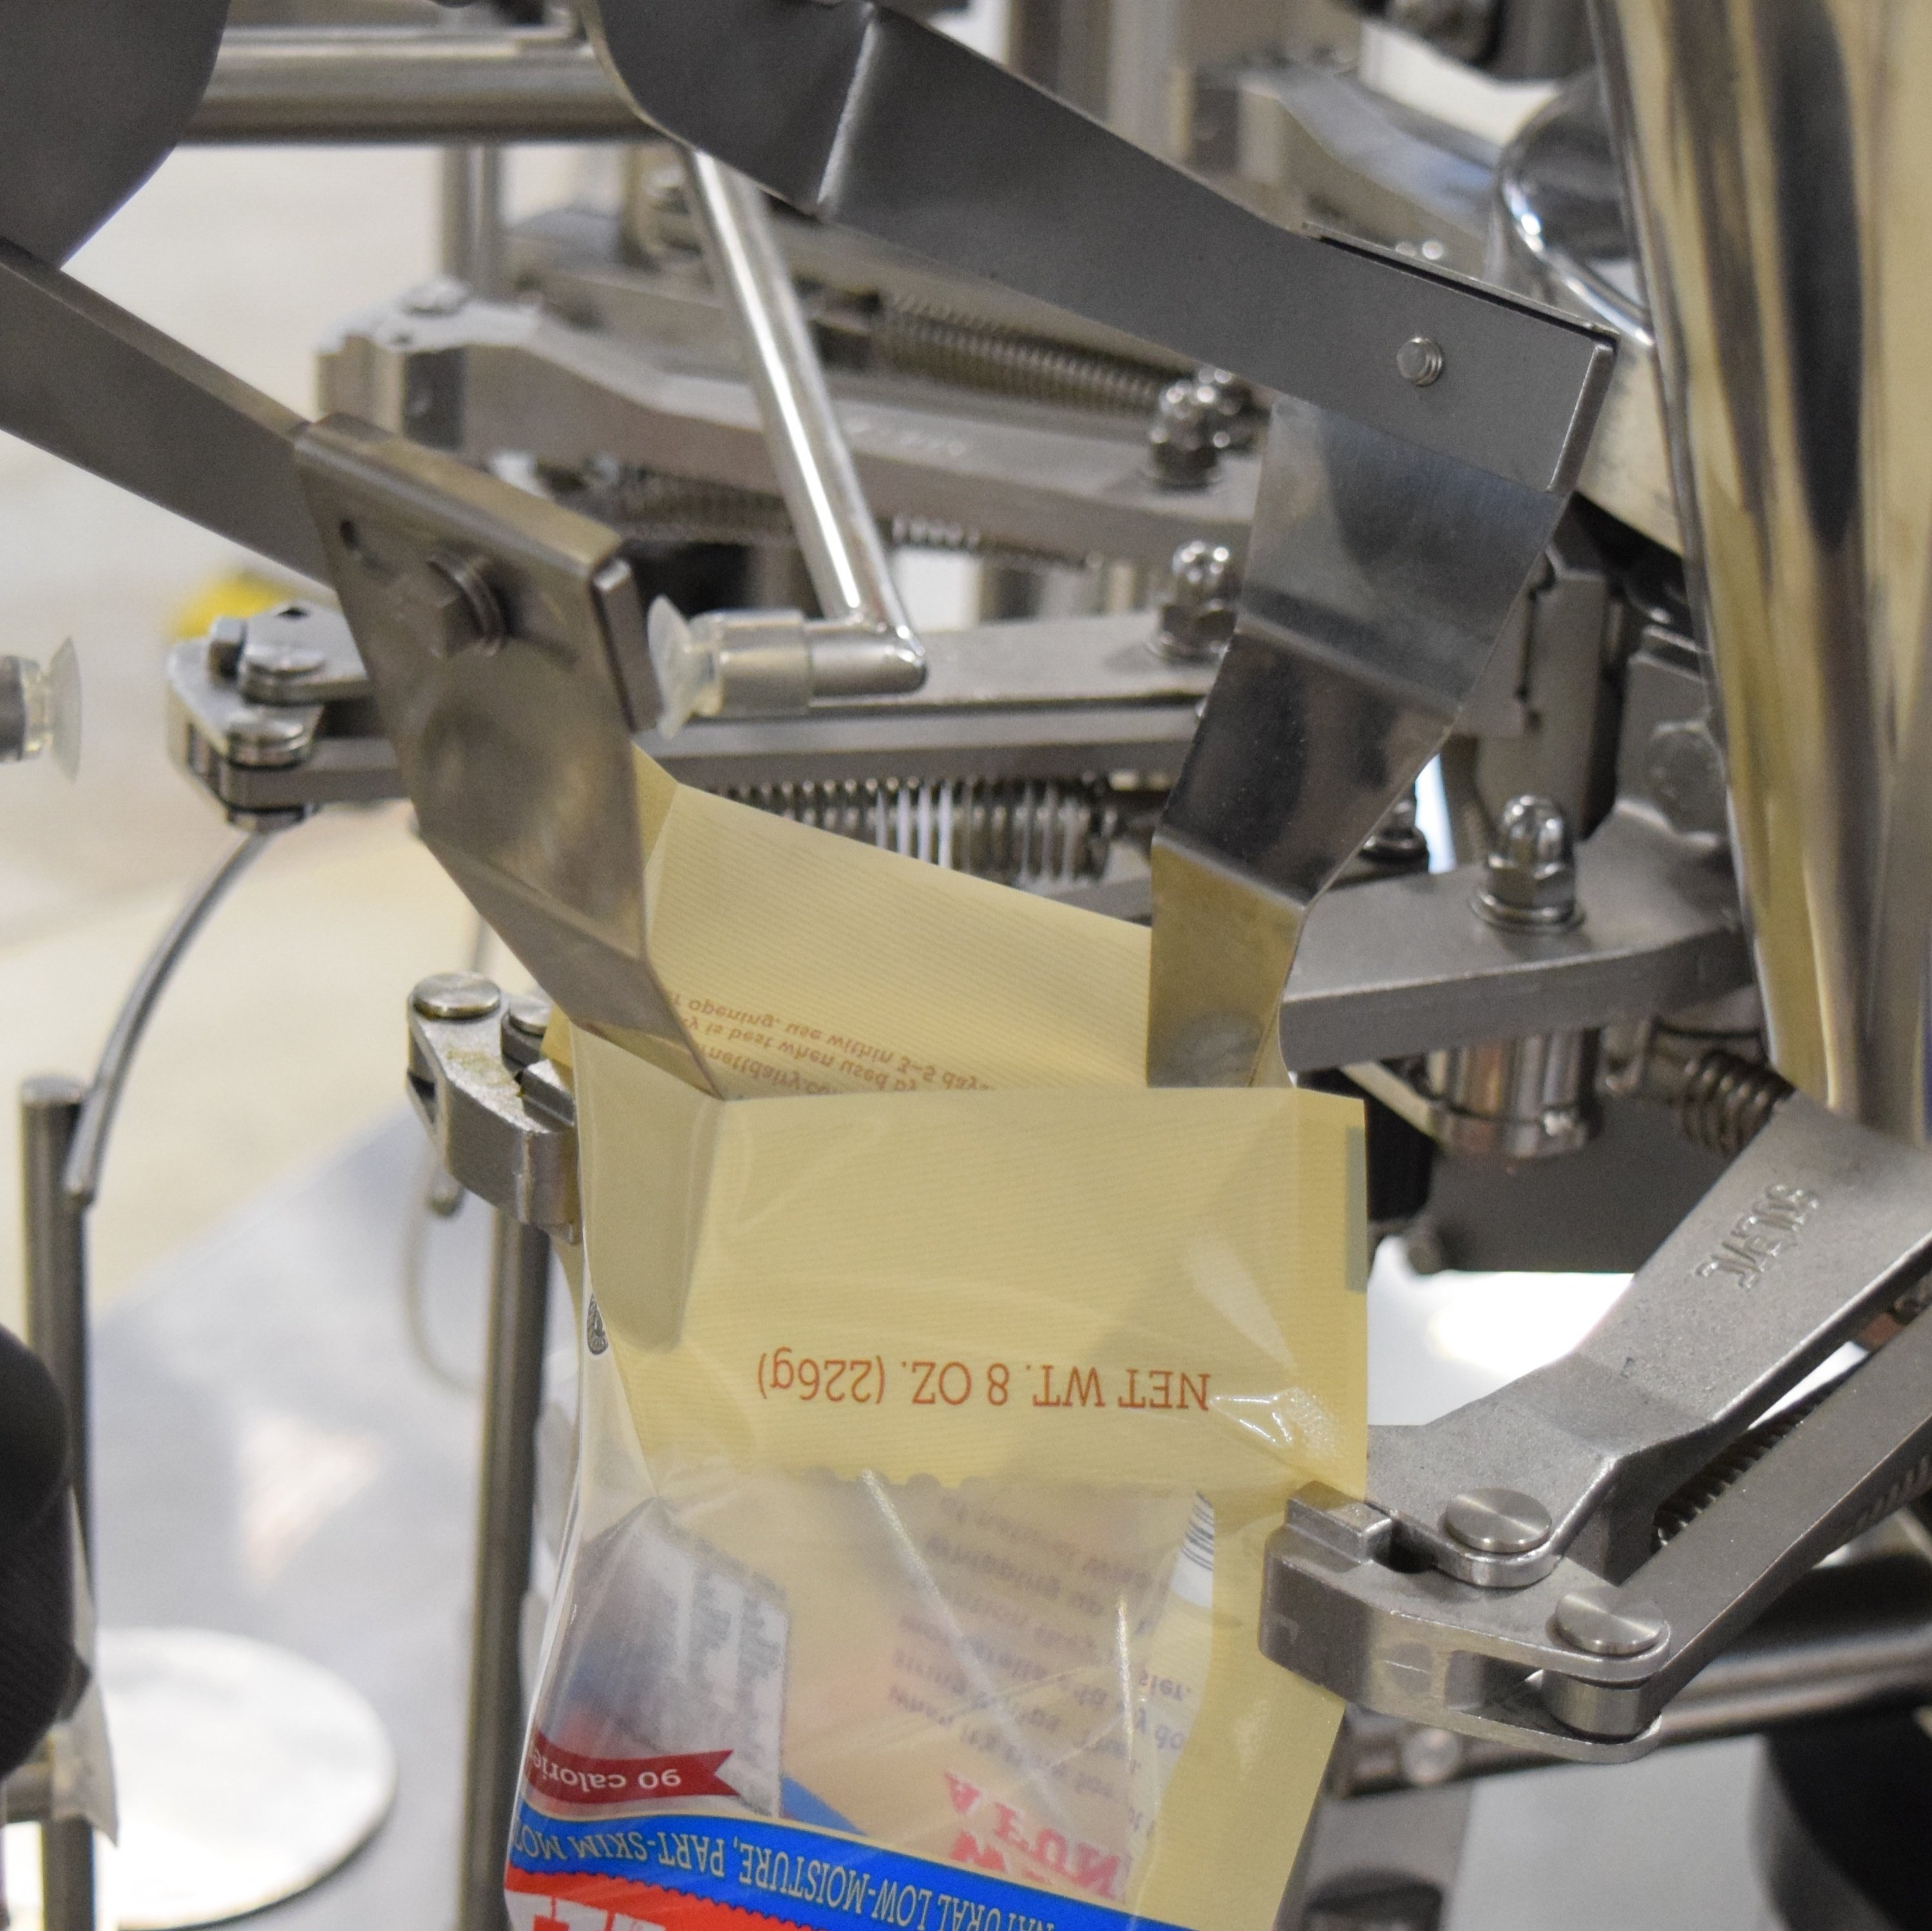 Premade_Pouch_Packaging_Machine_Bag_Opening_SImplex-707409-edited.jpg